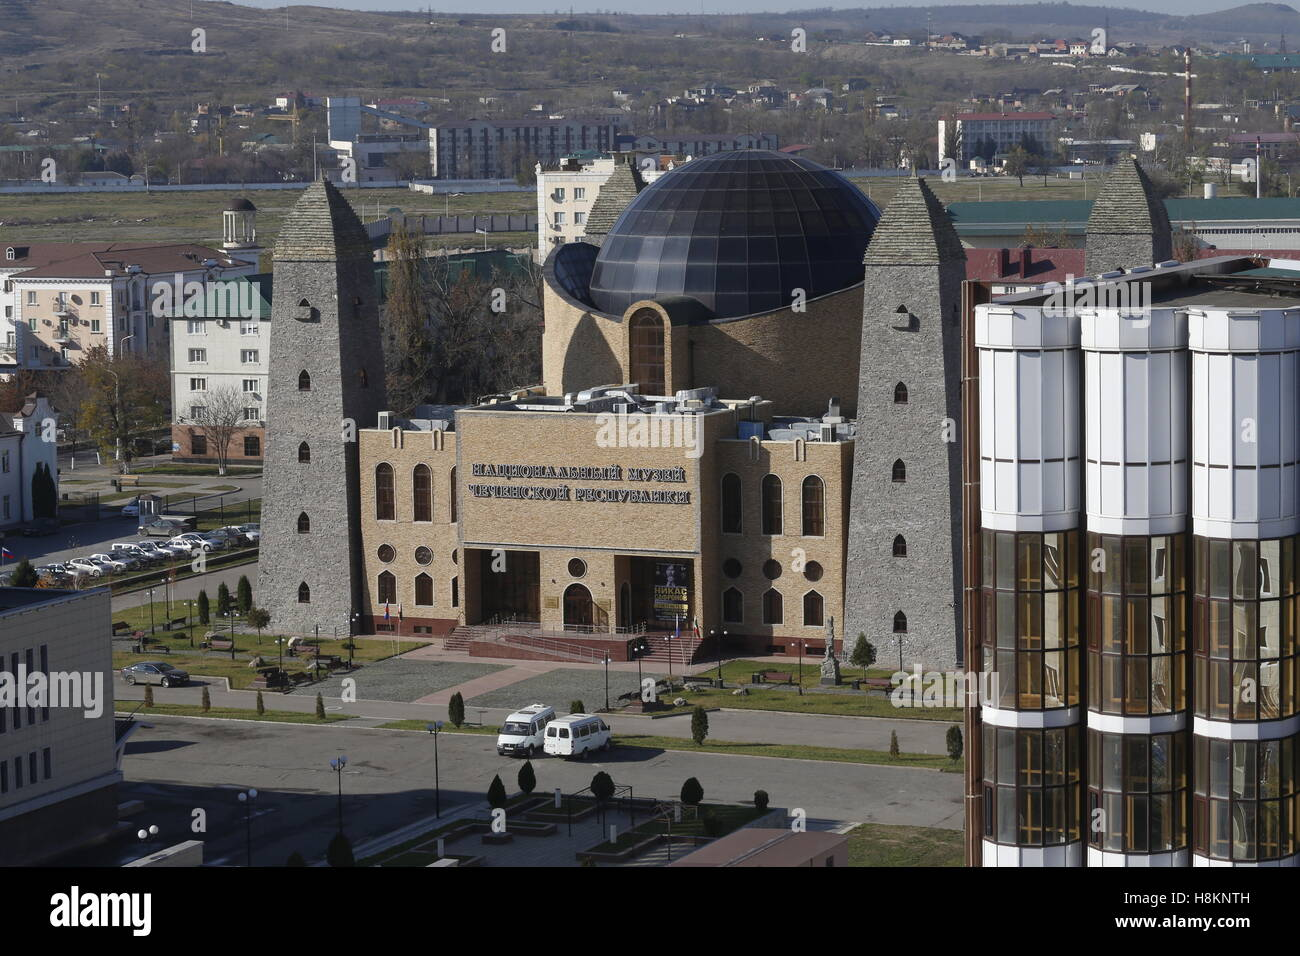 Grozny, Russia. 14th Nov, 2016. A view of the Chechen Republic National Museum. © Valery Matytsin/TASS/Alamy - Stock Image